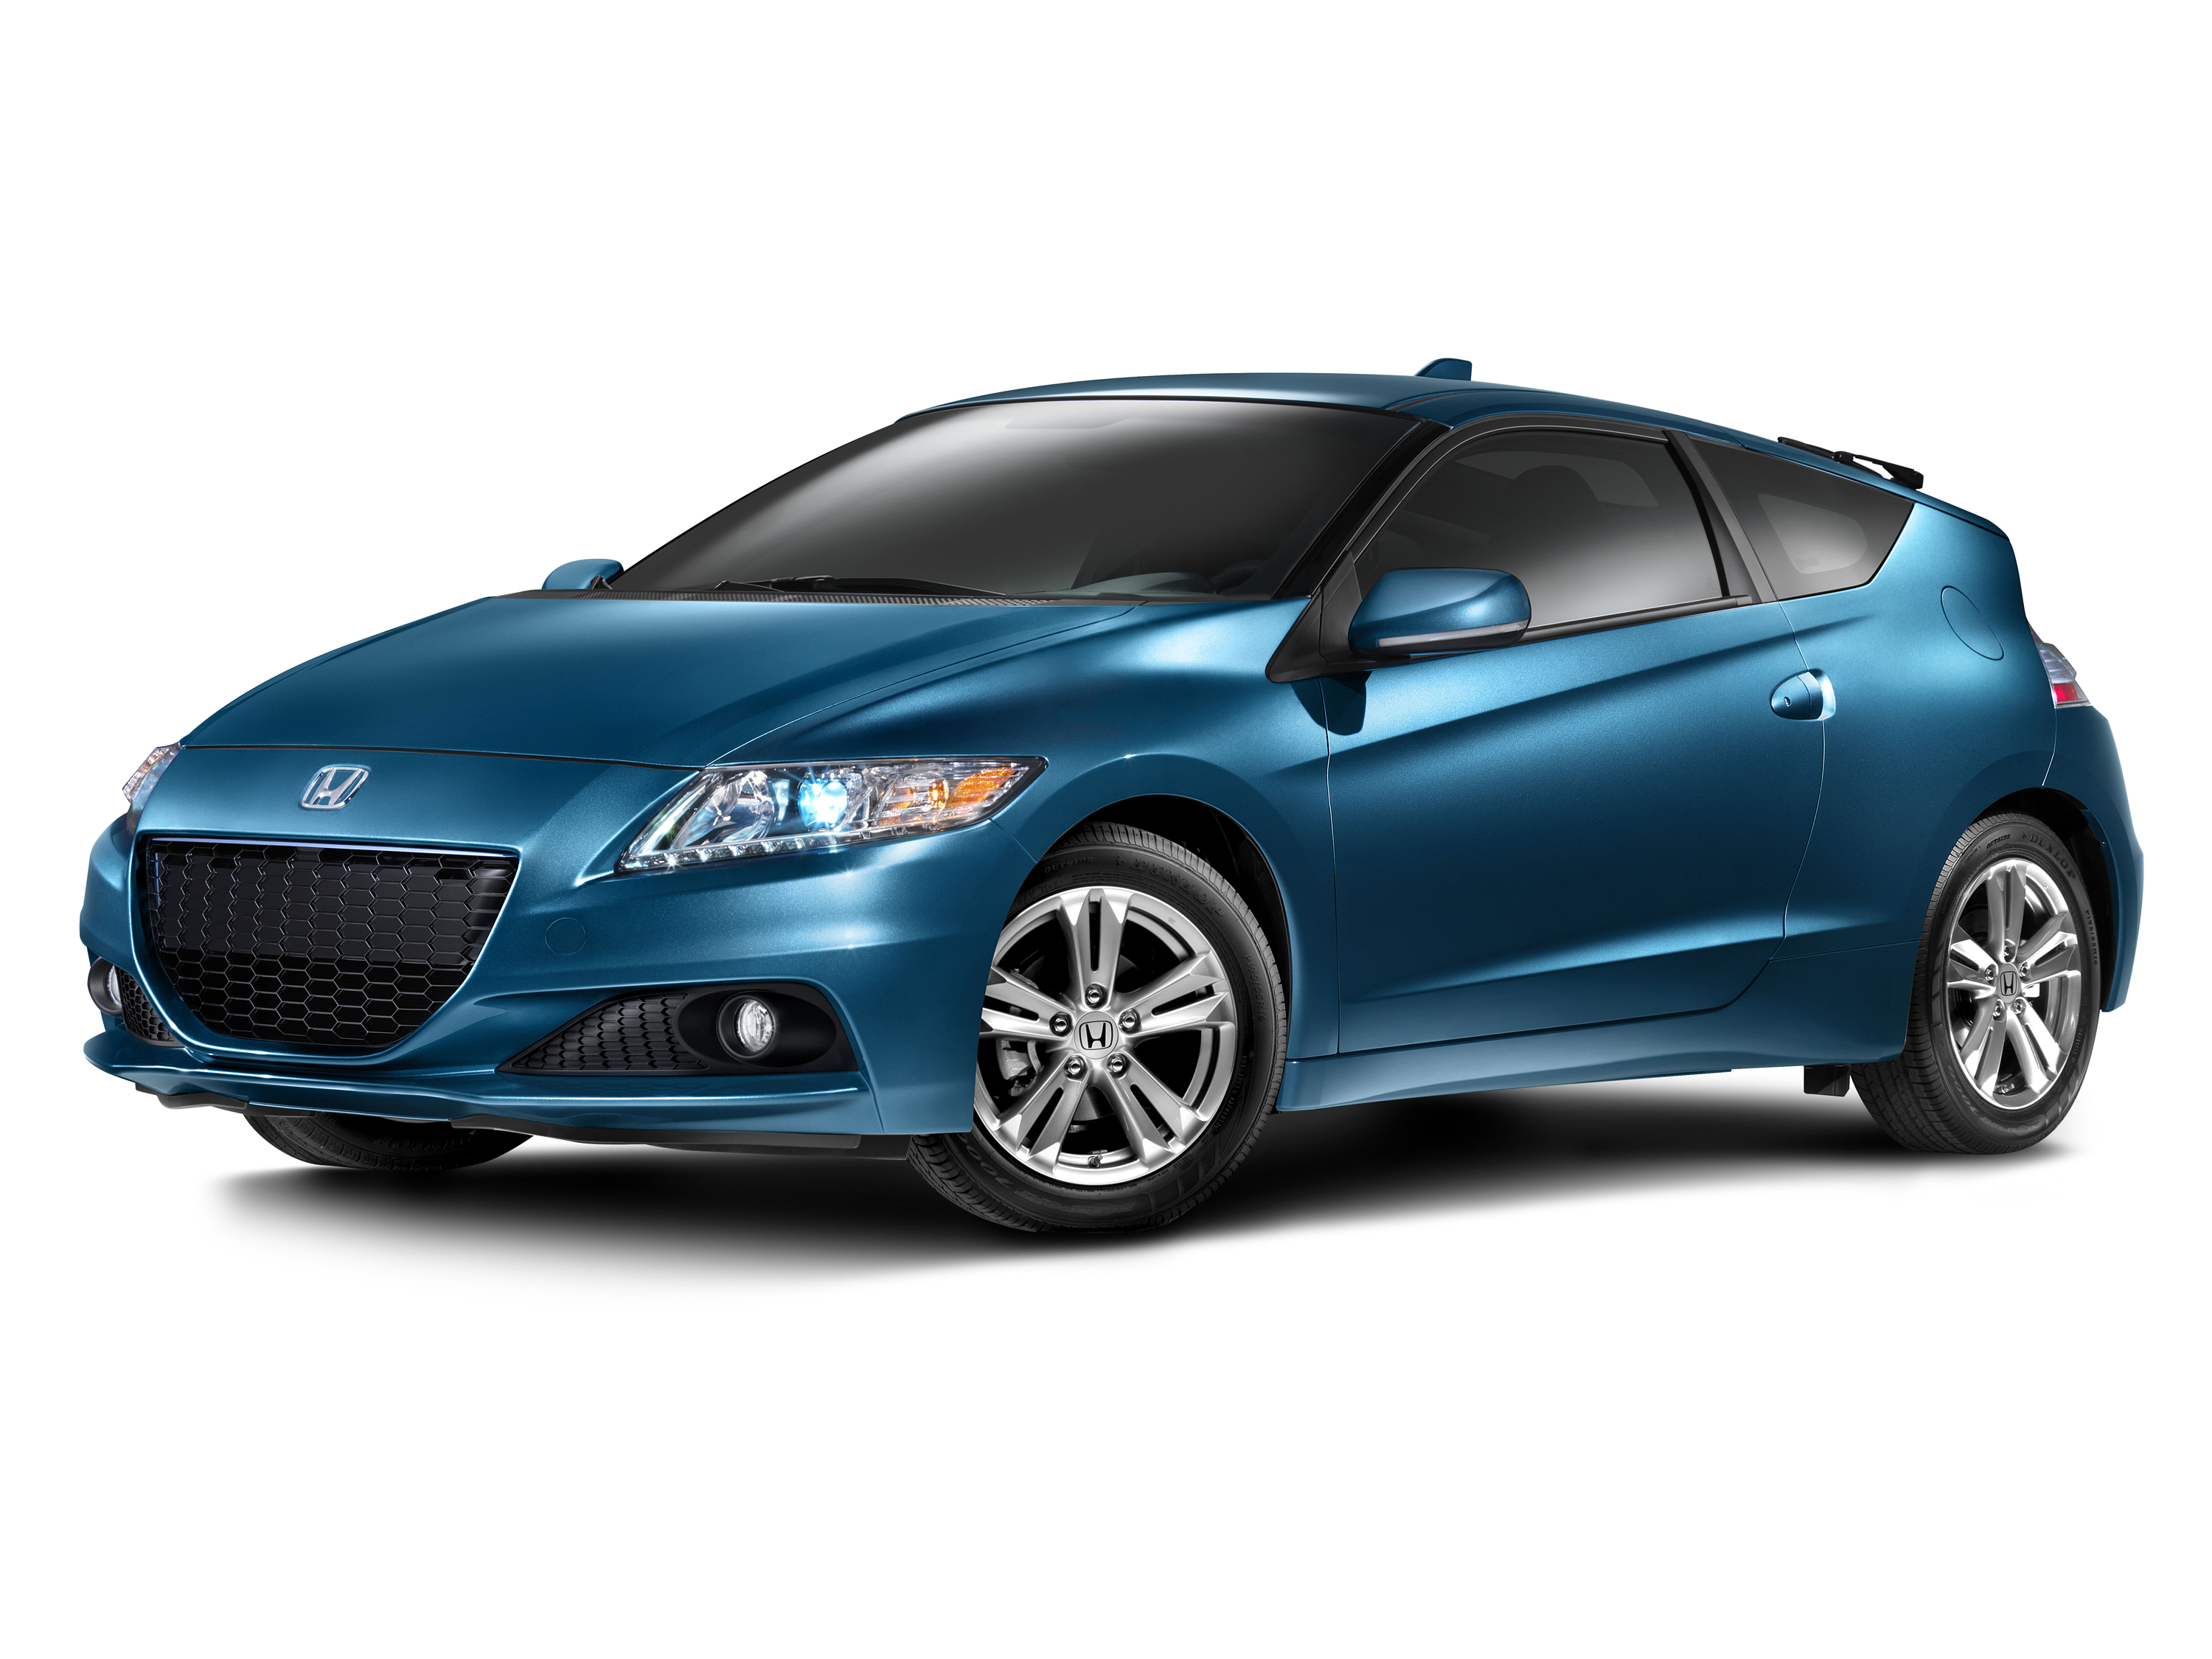 Honda Cr Z Hybrid Coupe Gets Huge Sales Incentive Update